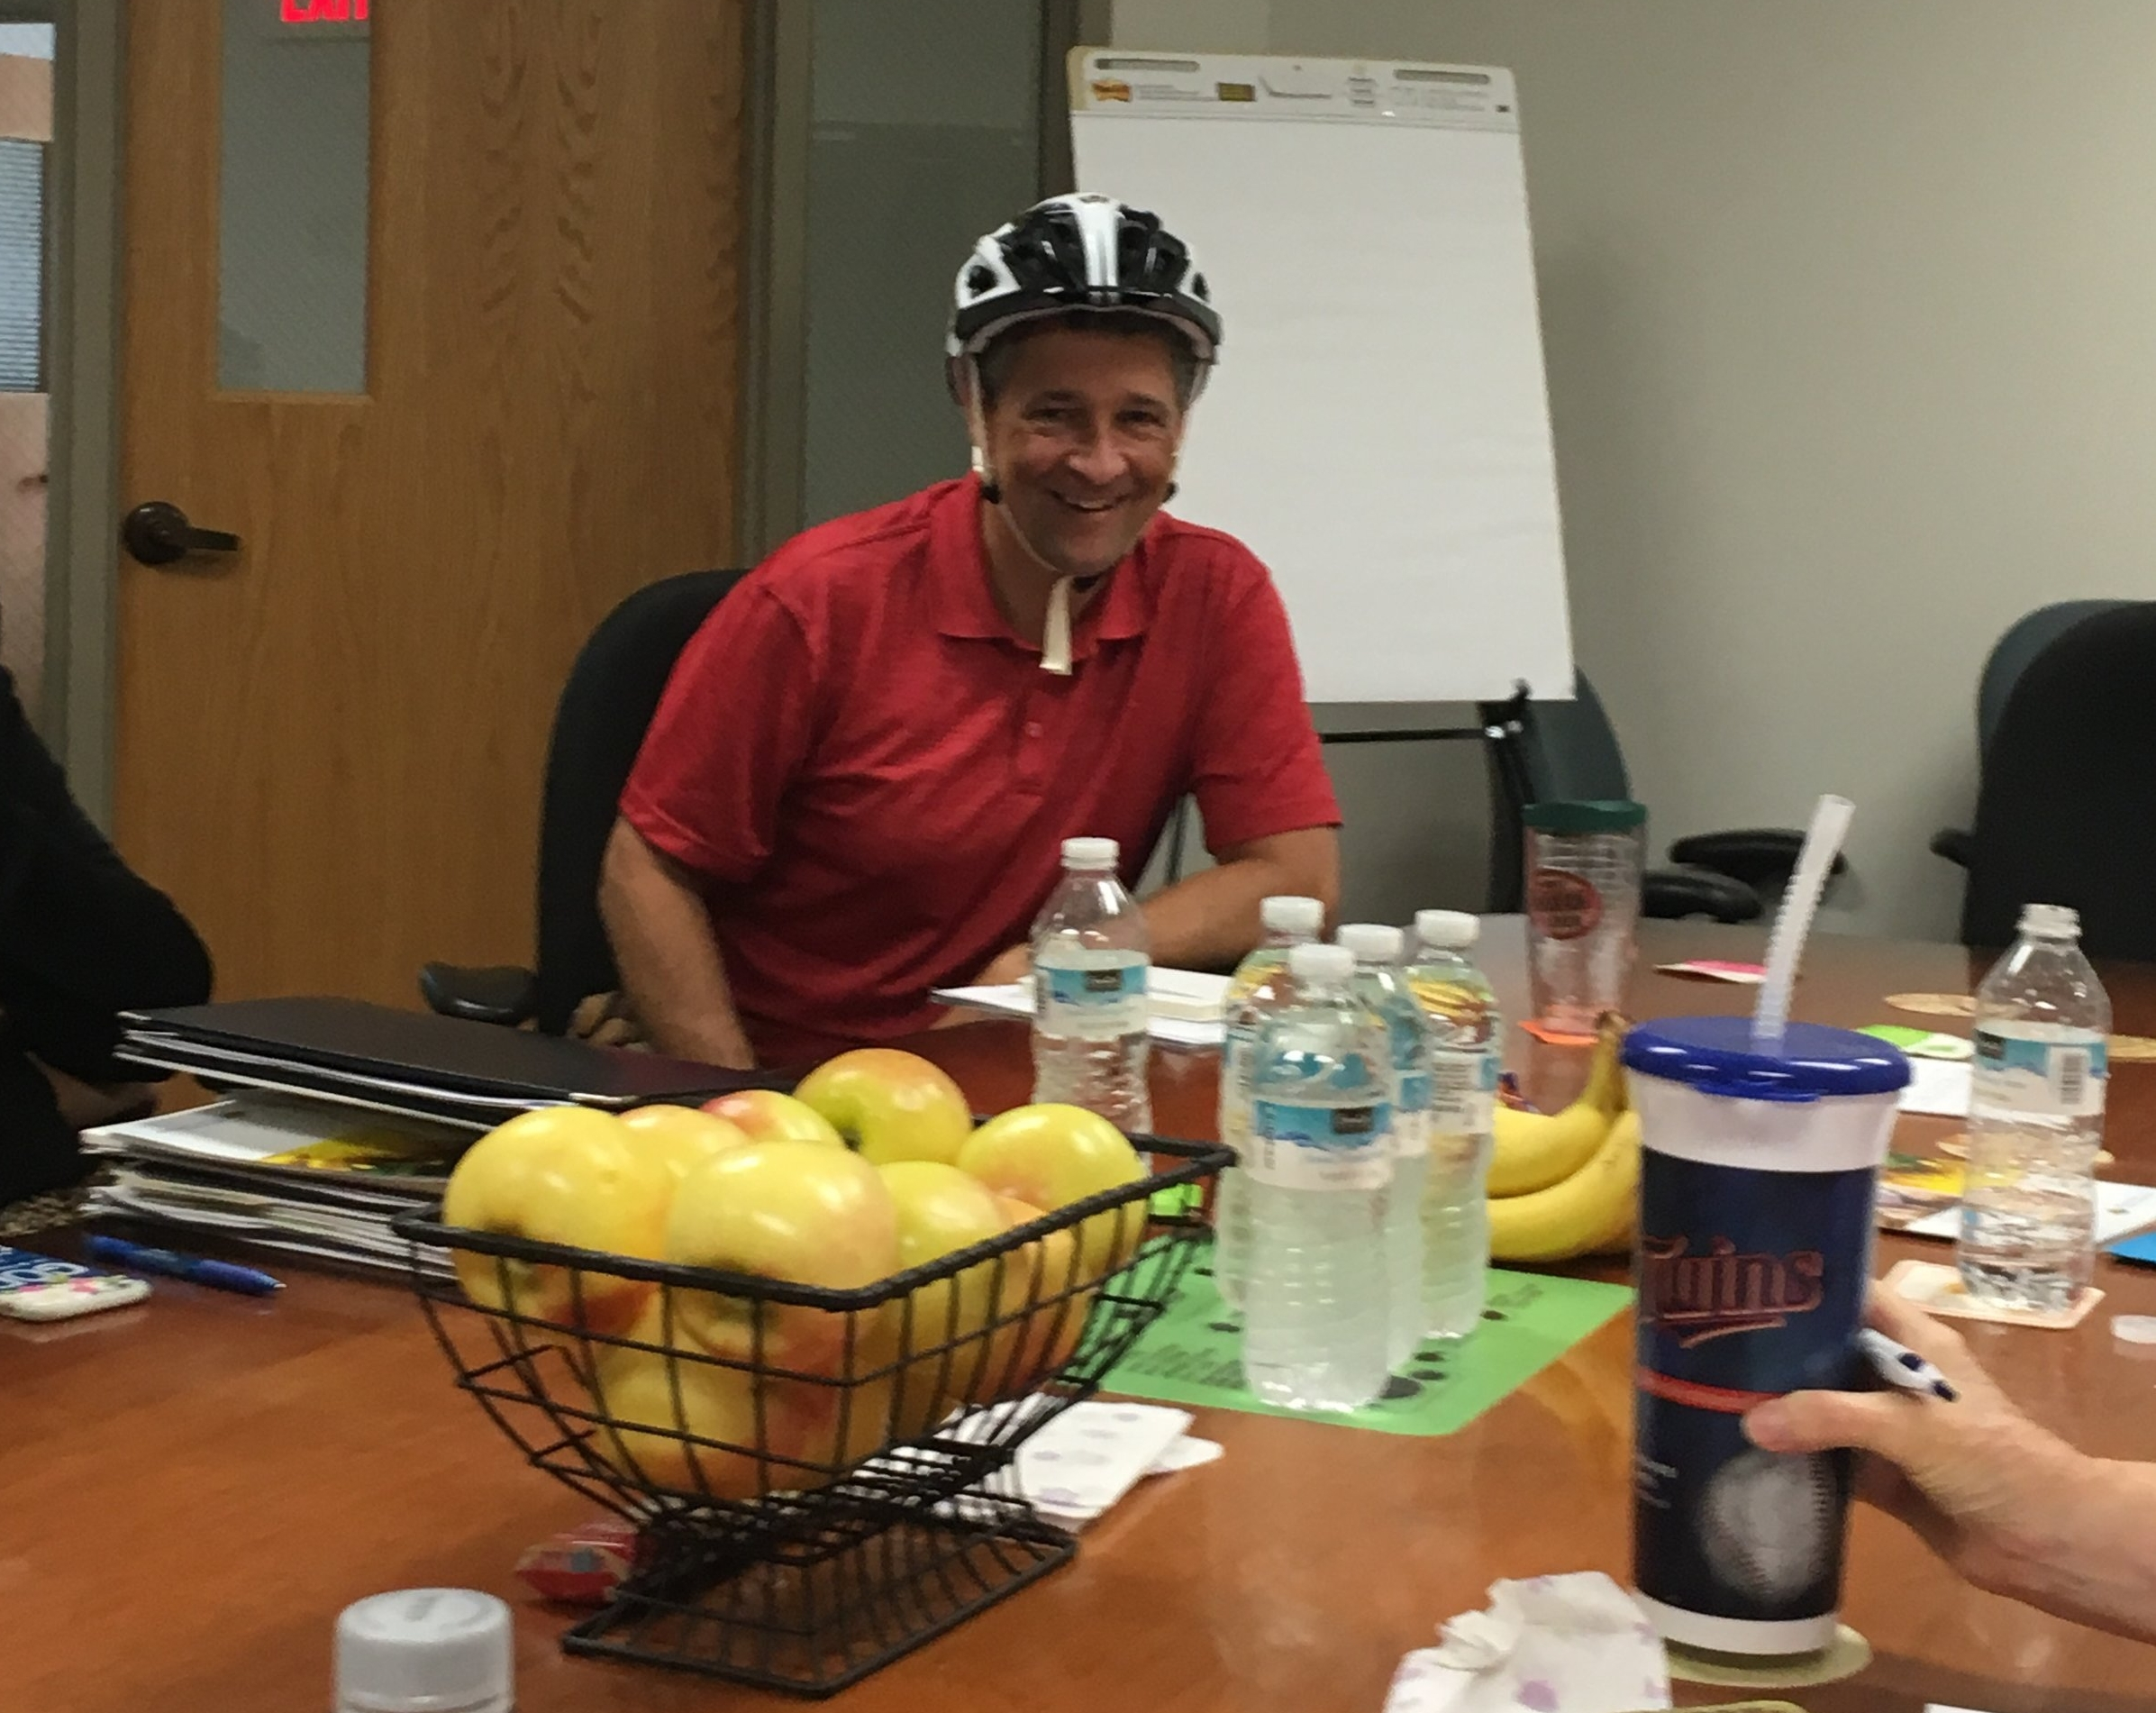 SHIP represented - Pastor David Knox using active transportation to attend the WCFAN meeting.